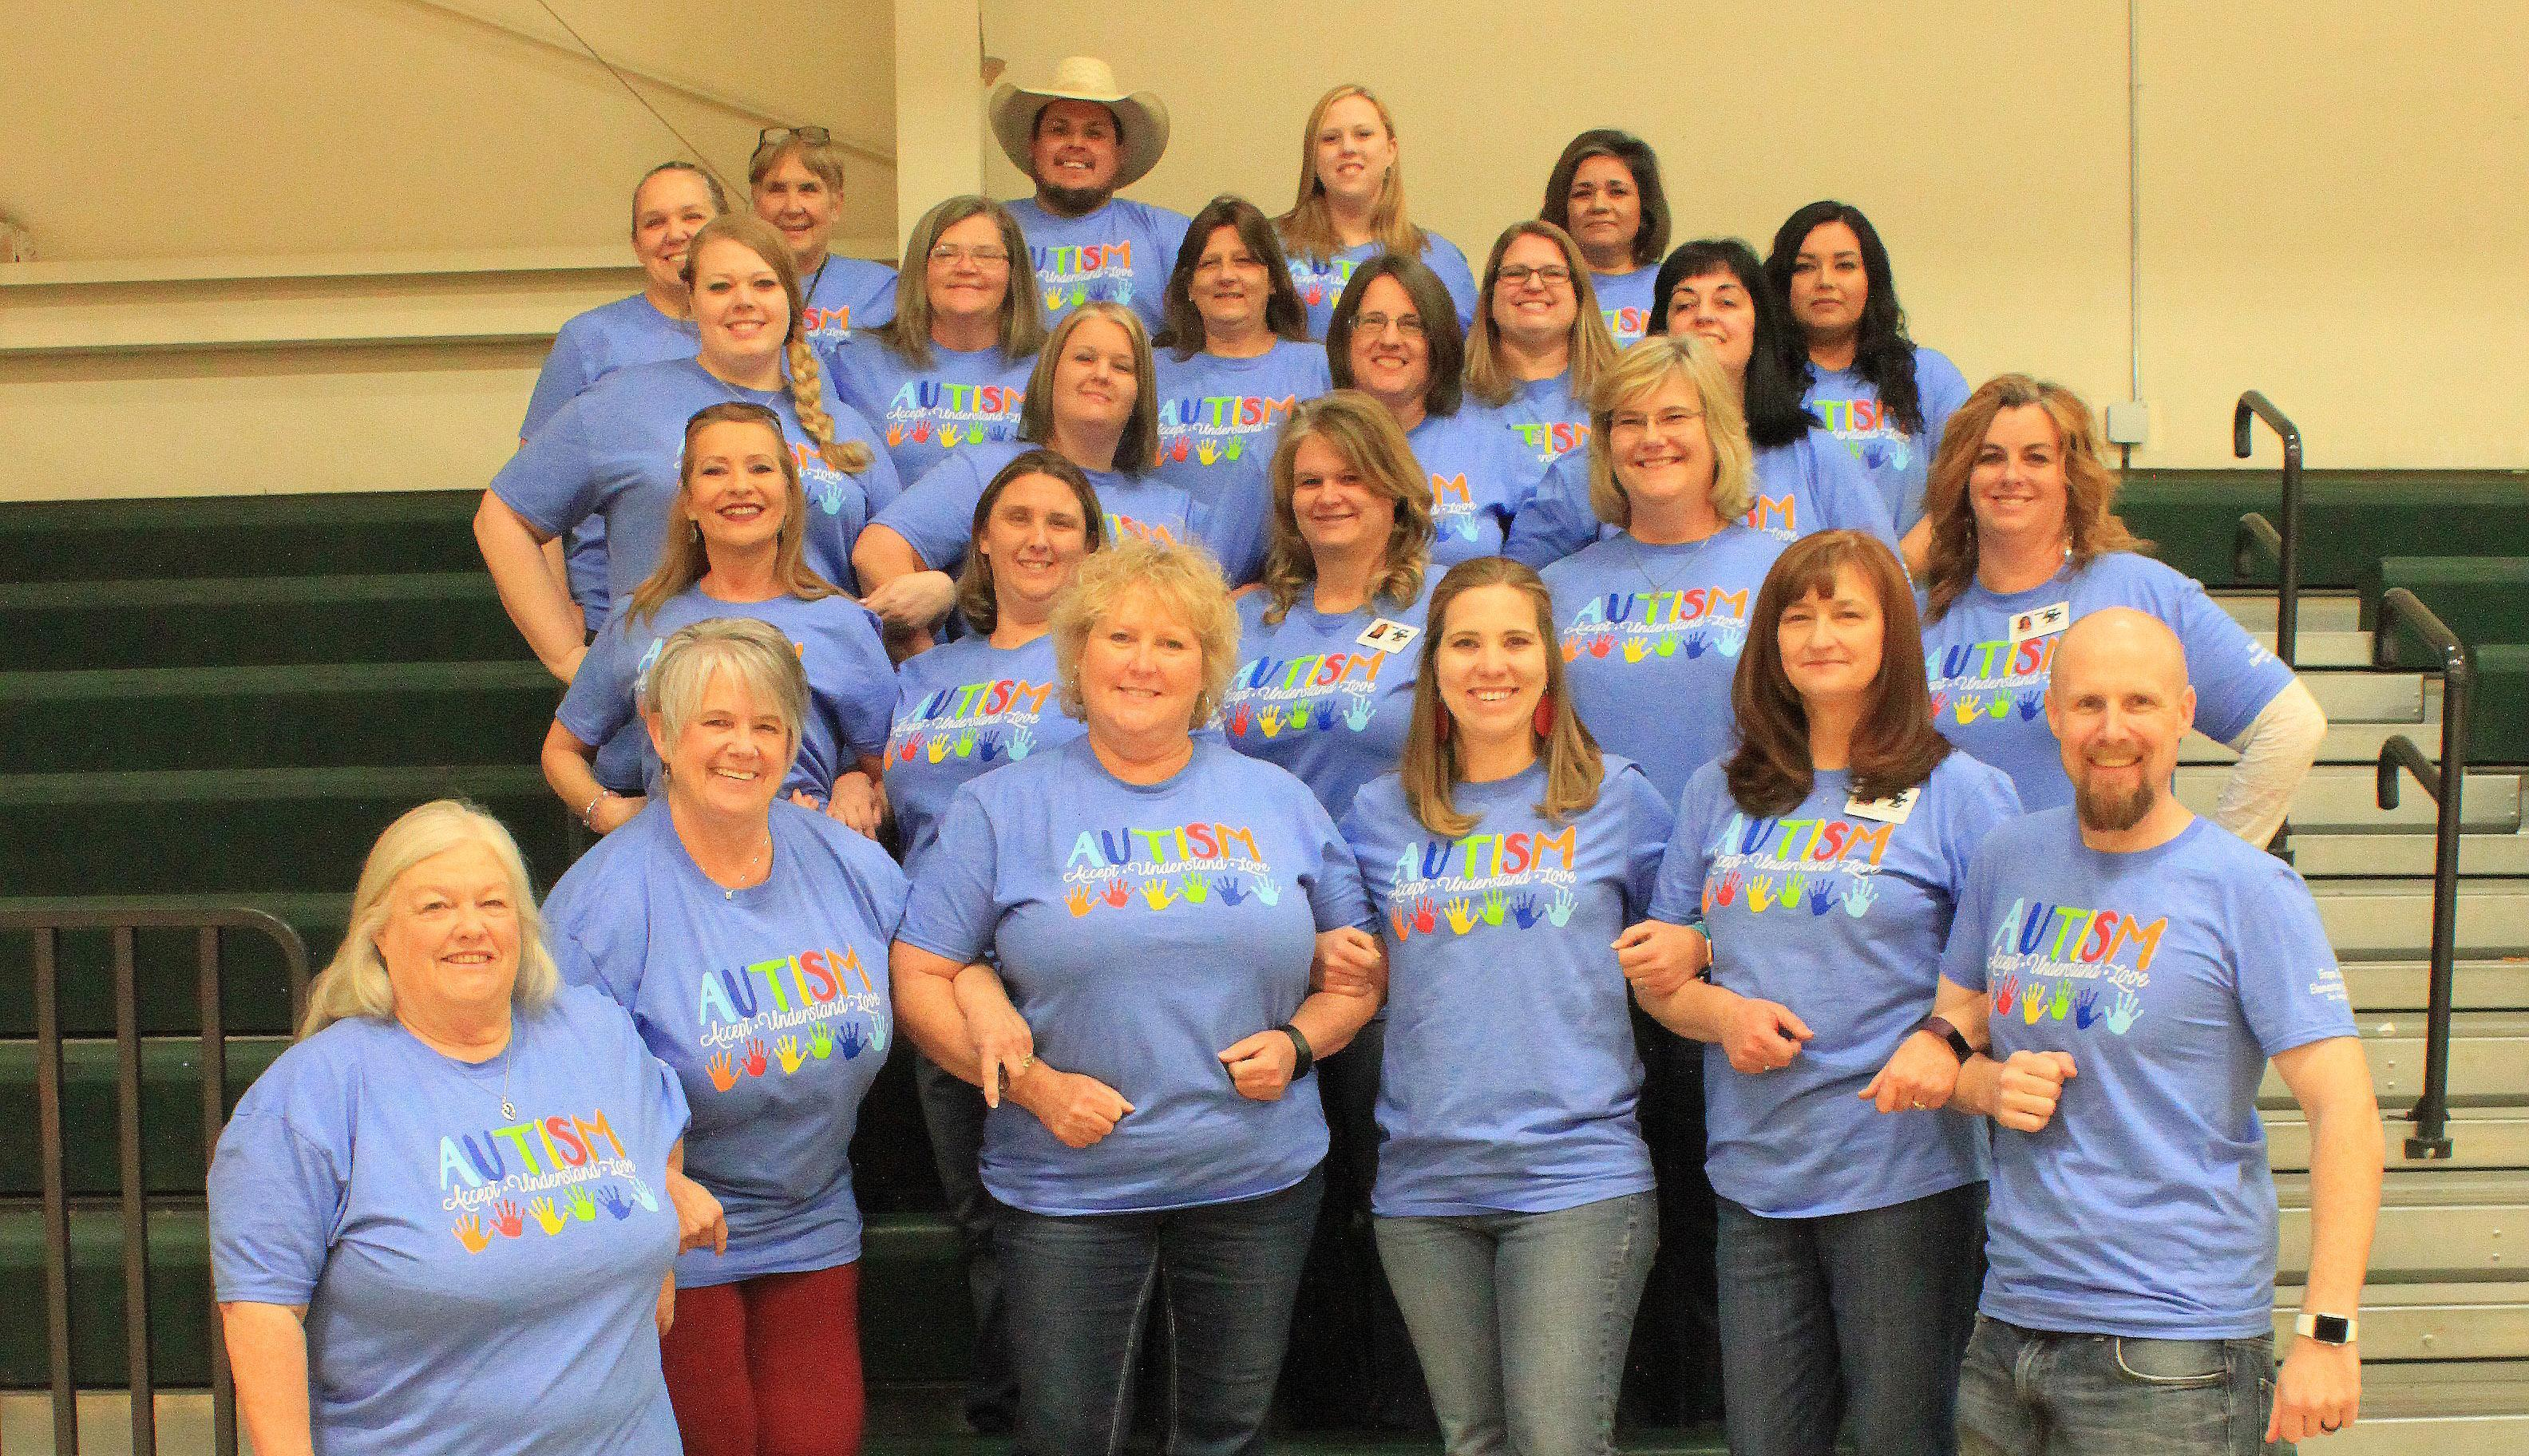 Teachers support Autism Week